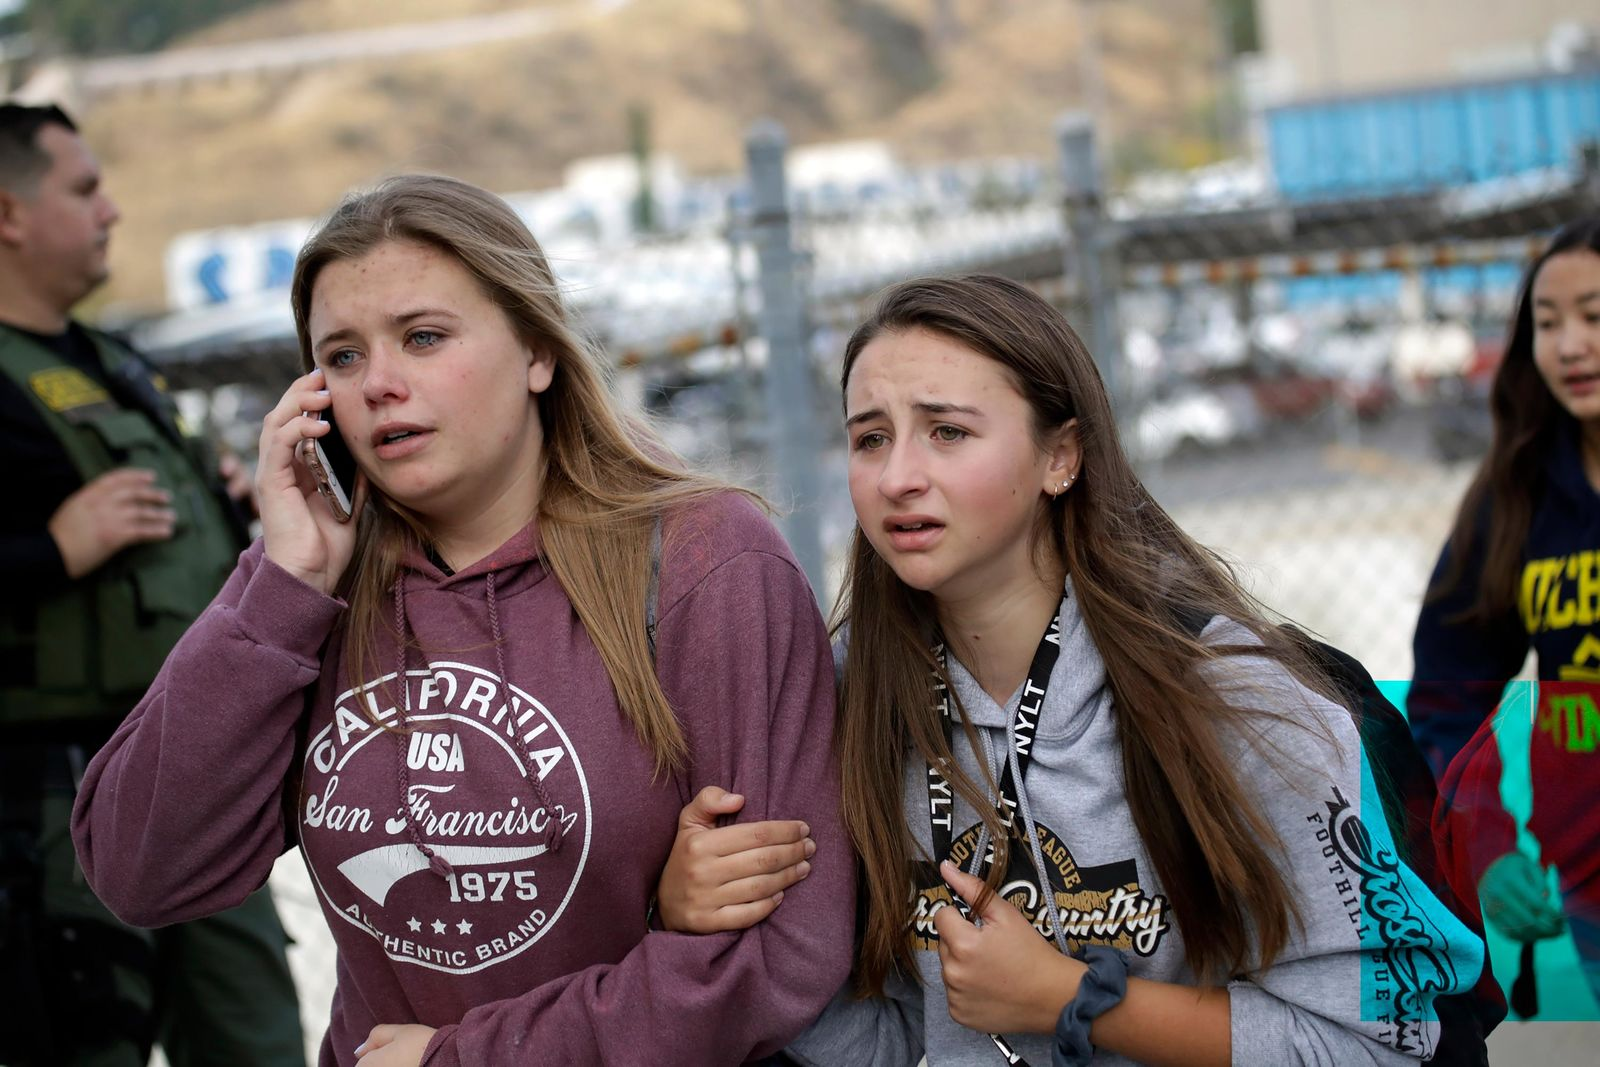 Students are escorted outside of Saugus High School after reports of a shooting on Thursday, Nov. 14, 2019, in Santa Clarita, Calif. Los Angeles County Sheriff Alex Villanueva tweeted that the suspect was in custody and was being treated at a hospital. He said the suspect was a student but gave no further information. (AP Photo/Marcio Jose Sanchez)